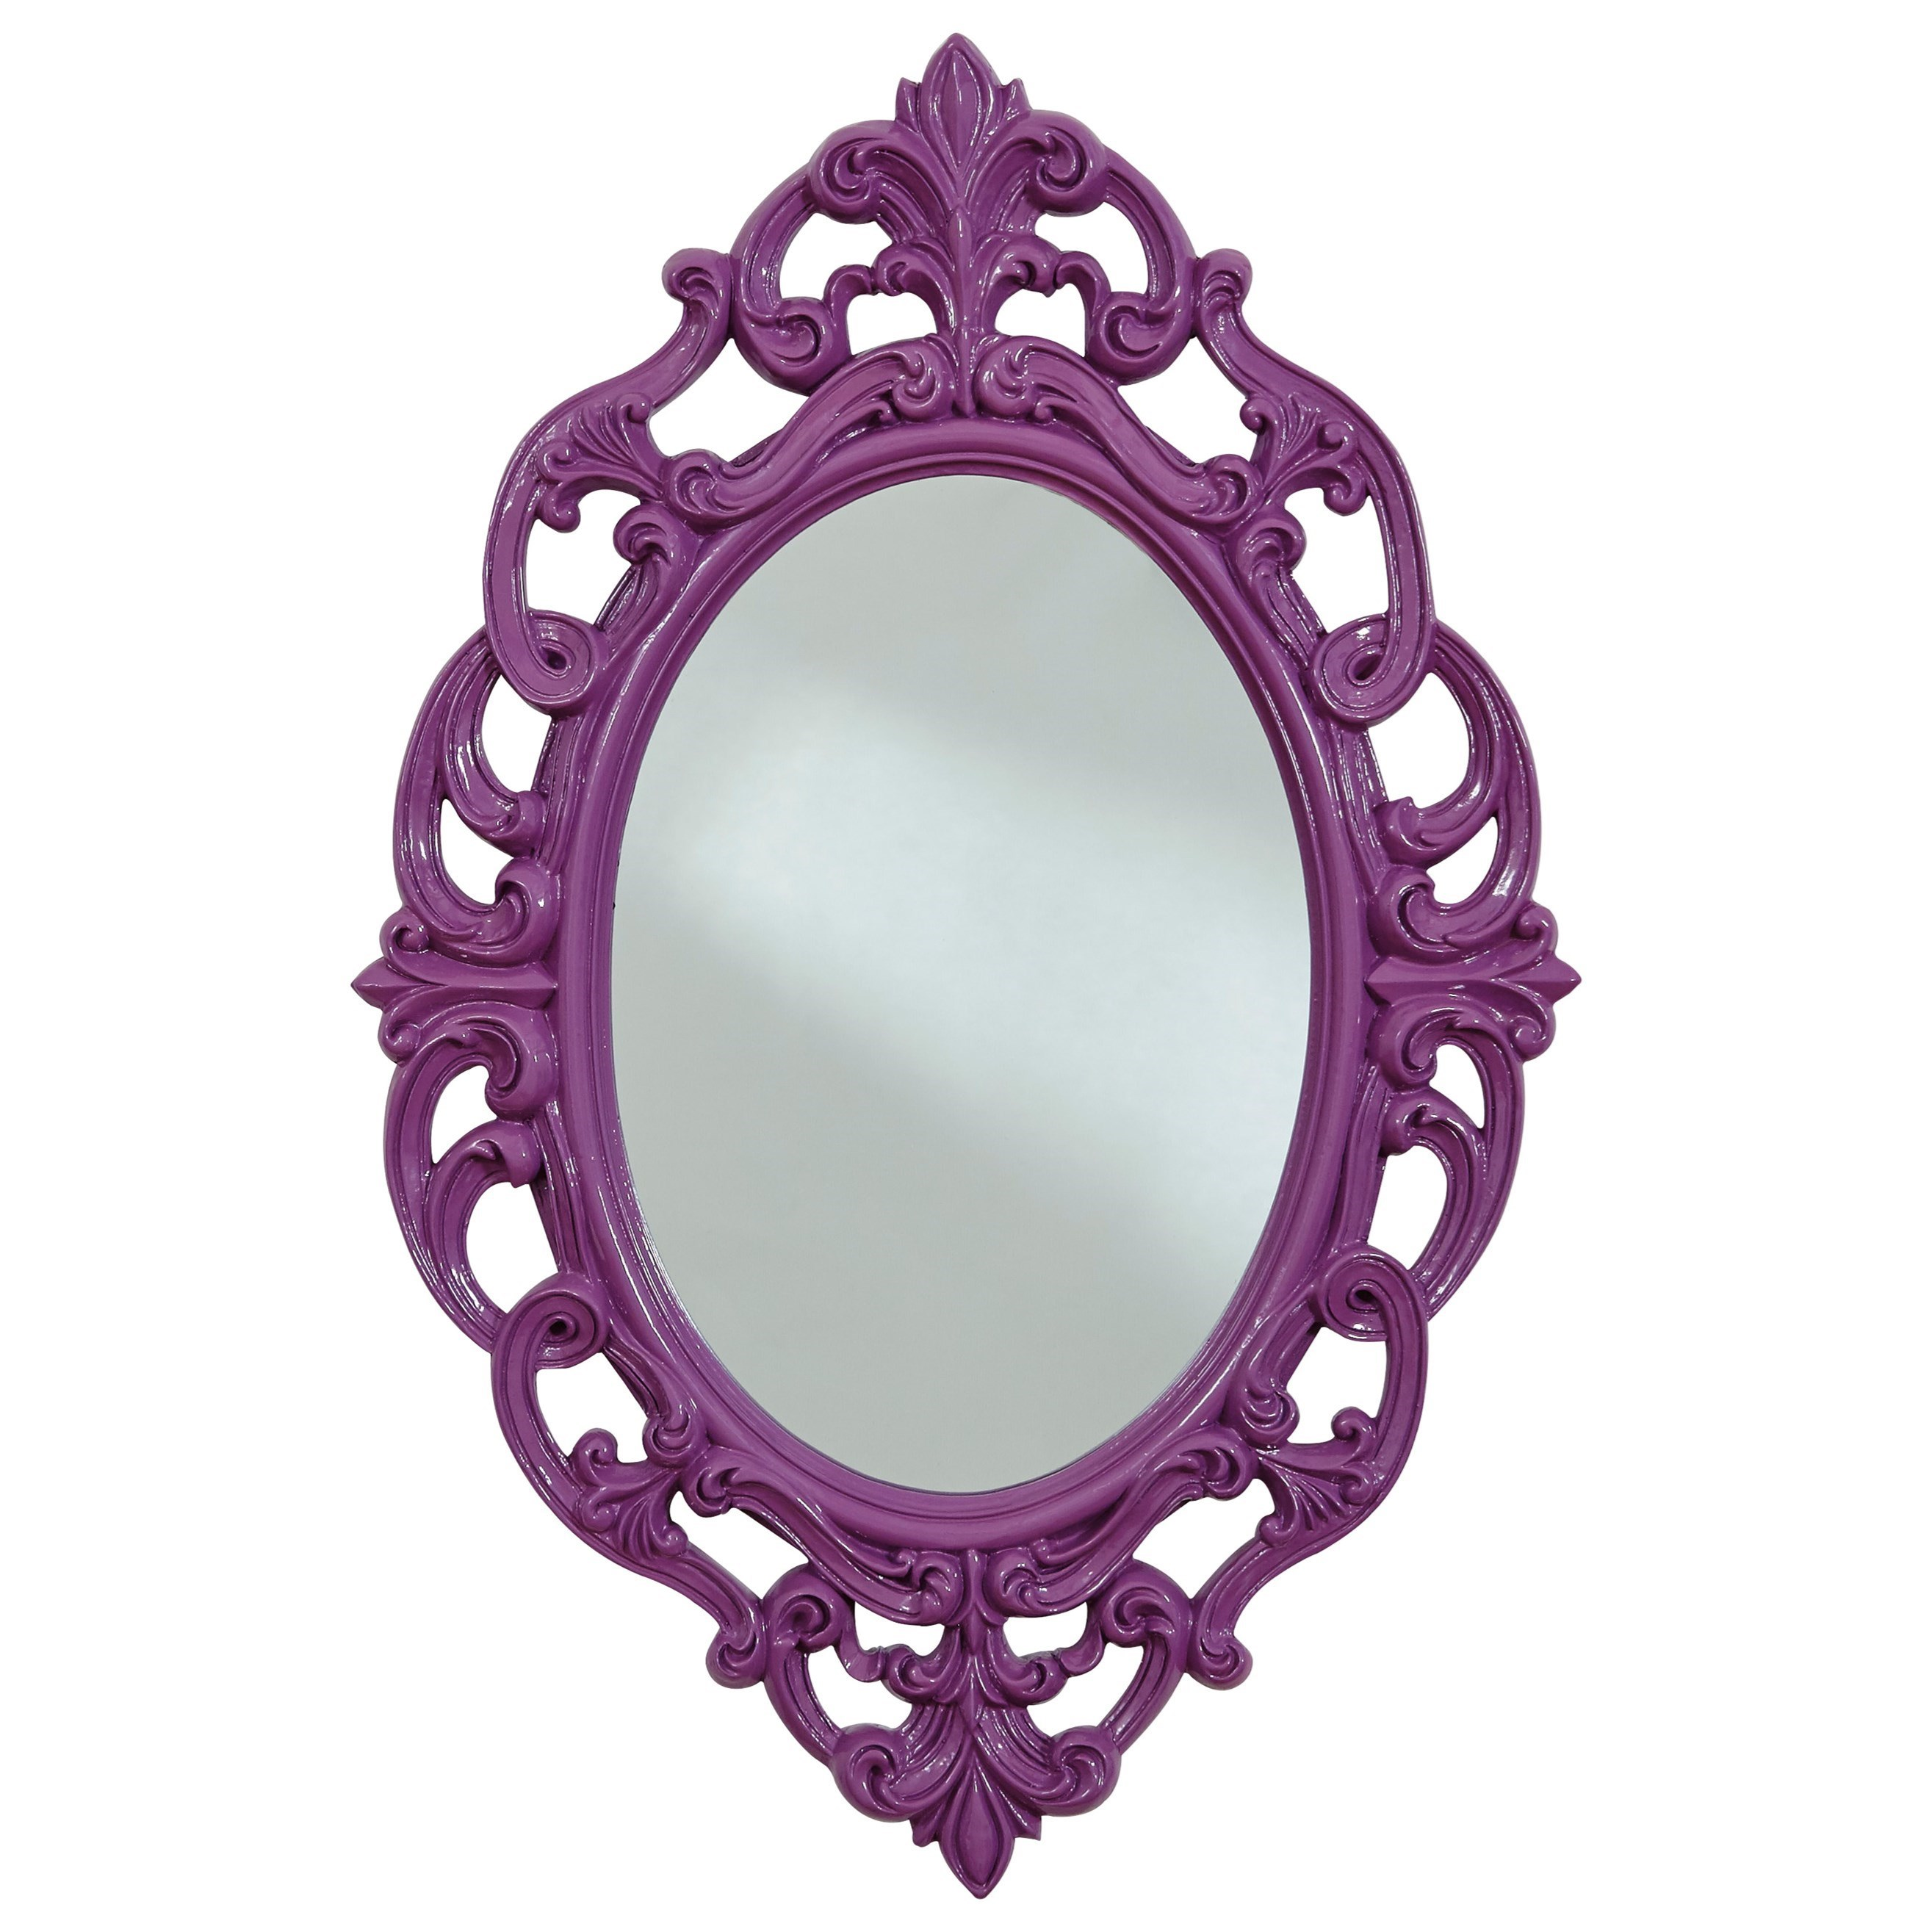 Signature Design by Ashley Accent Mirrors Diza Purple Accent Mirror - Item Number: A8010102